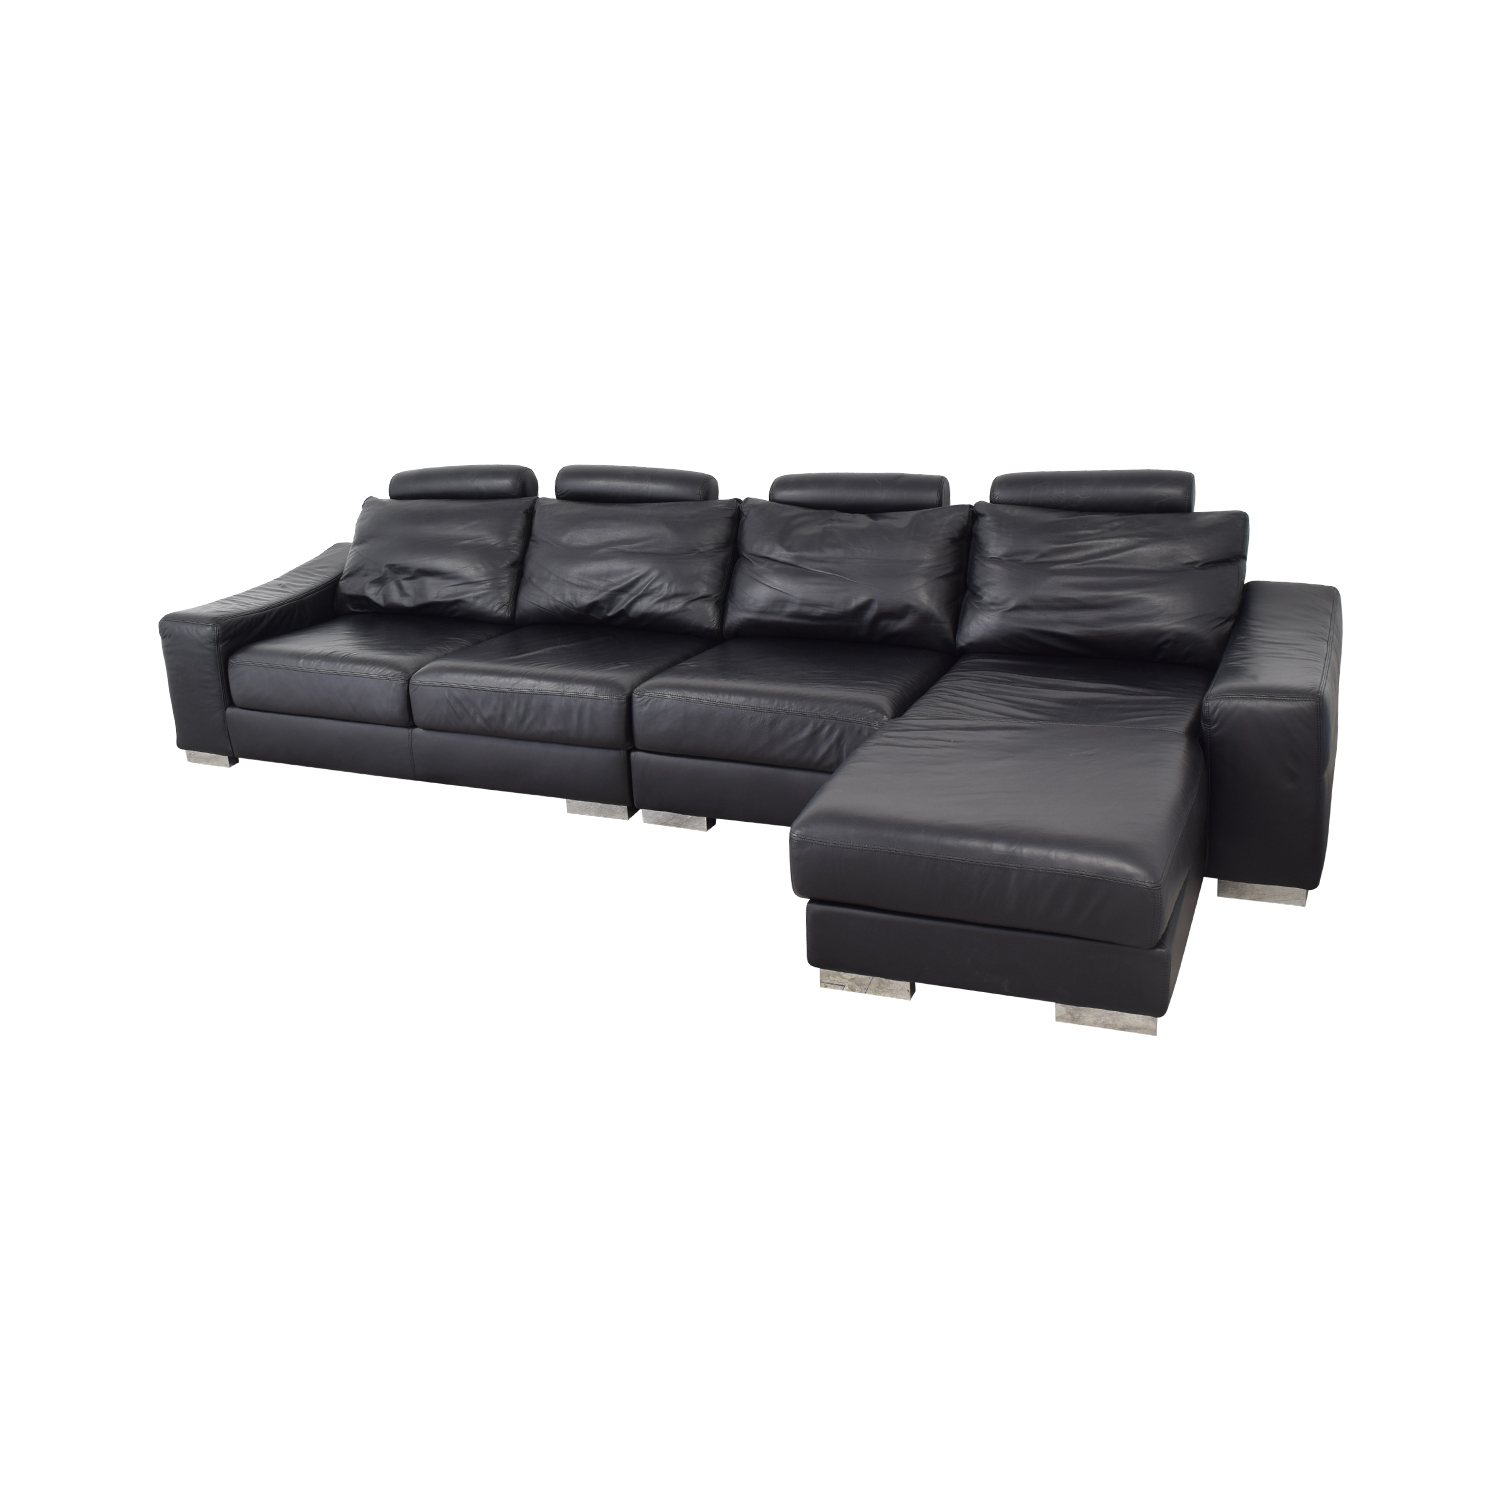 Lind Lind Sectional Sofa with Chaise dimensions